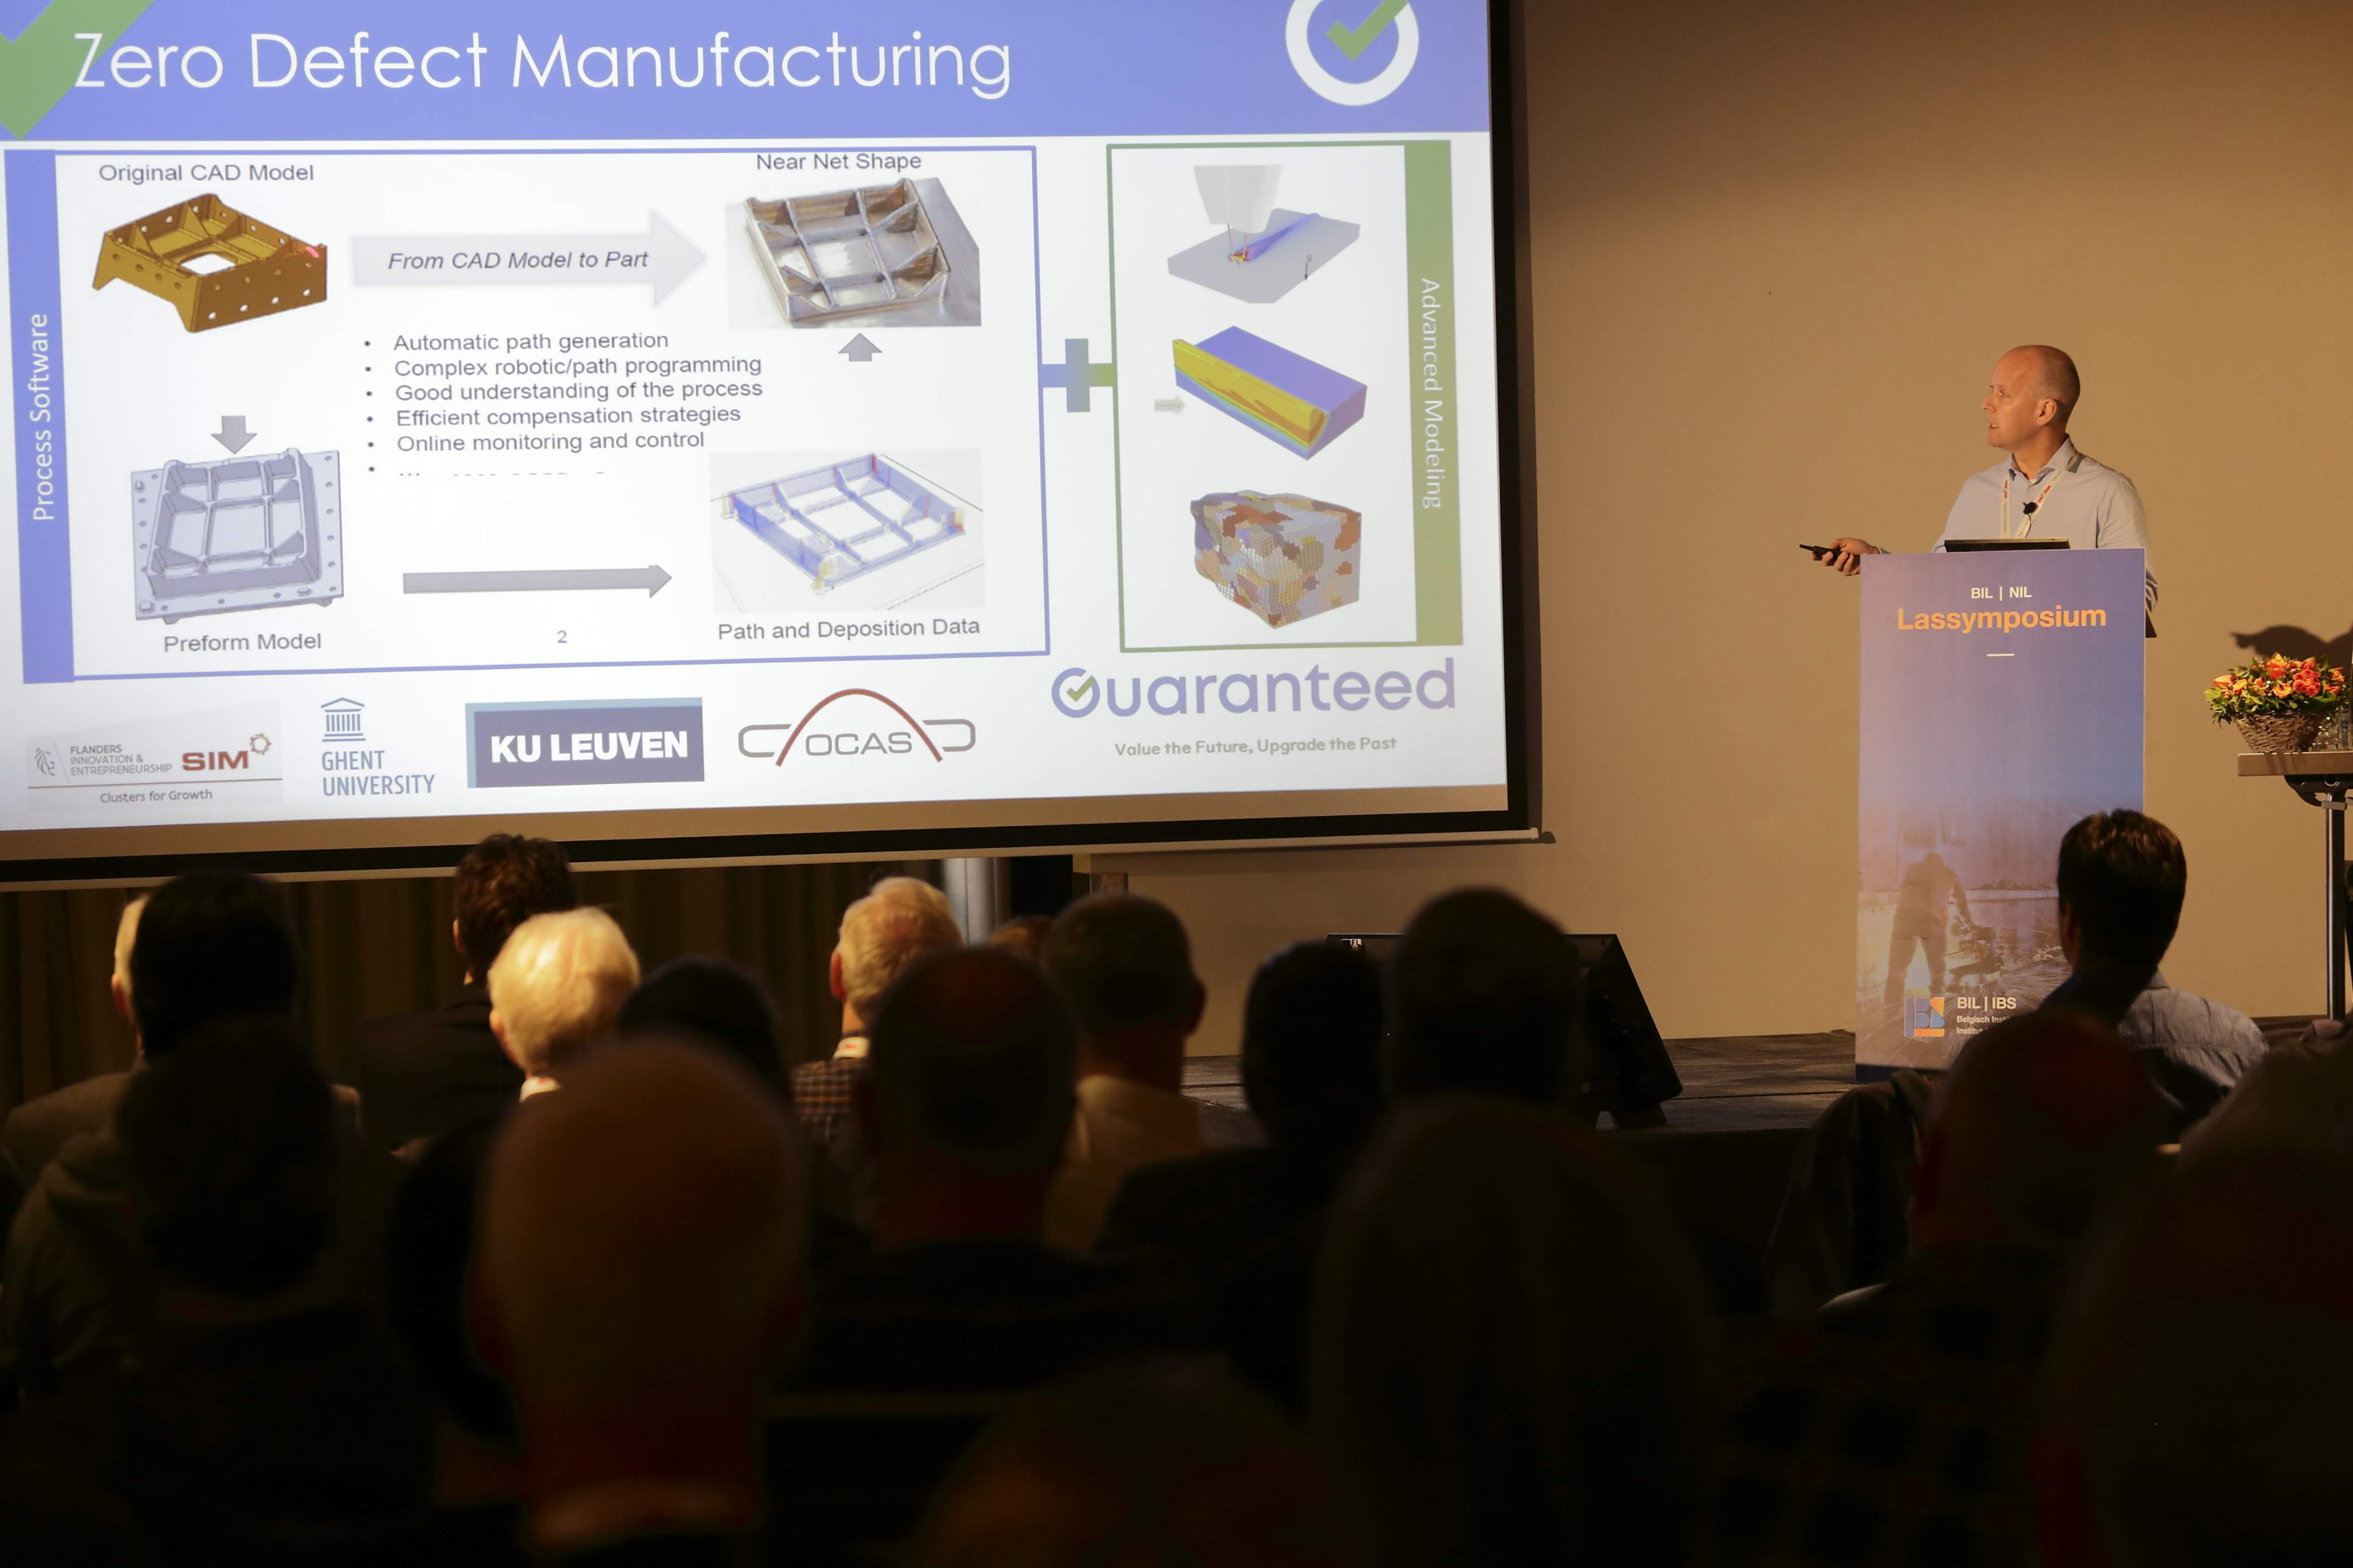 Our approach towards first-time-right, zero-defect manufacturing